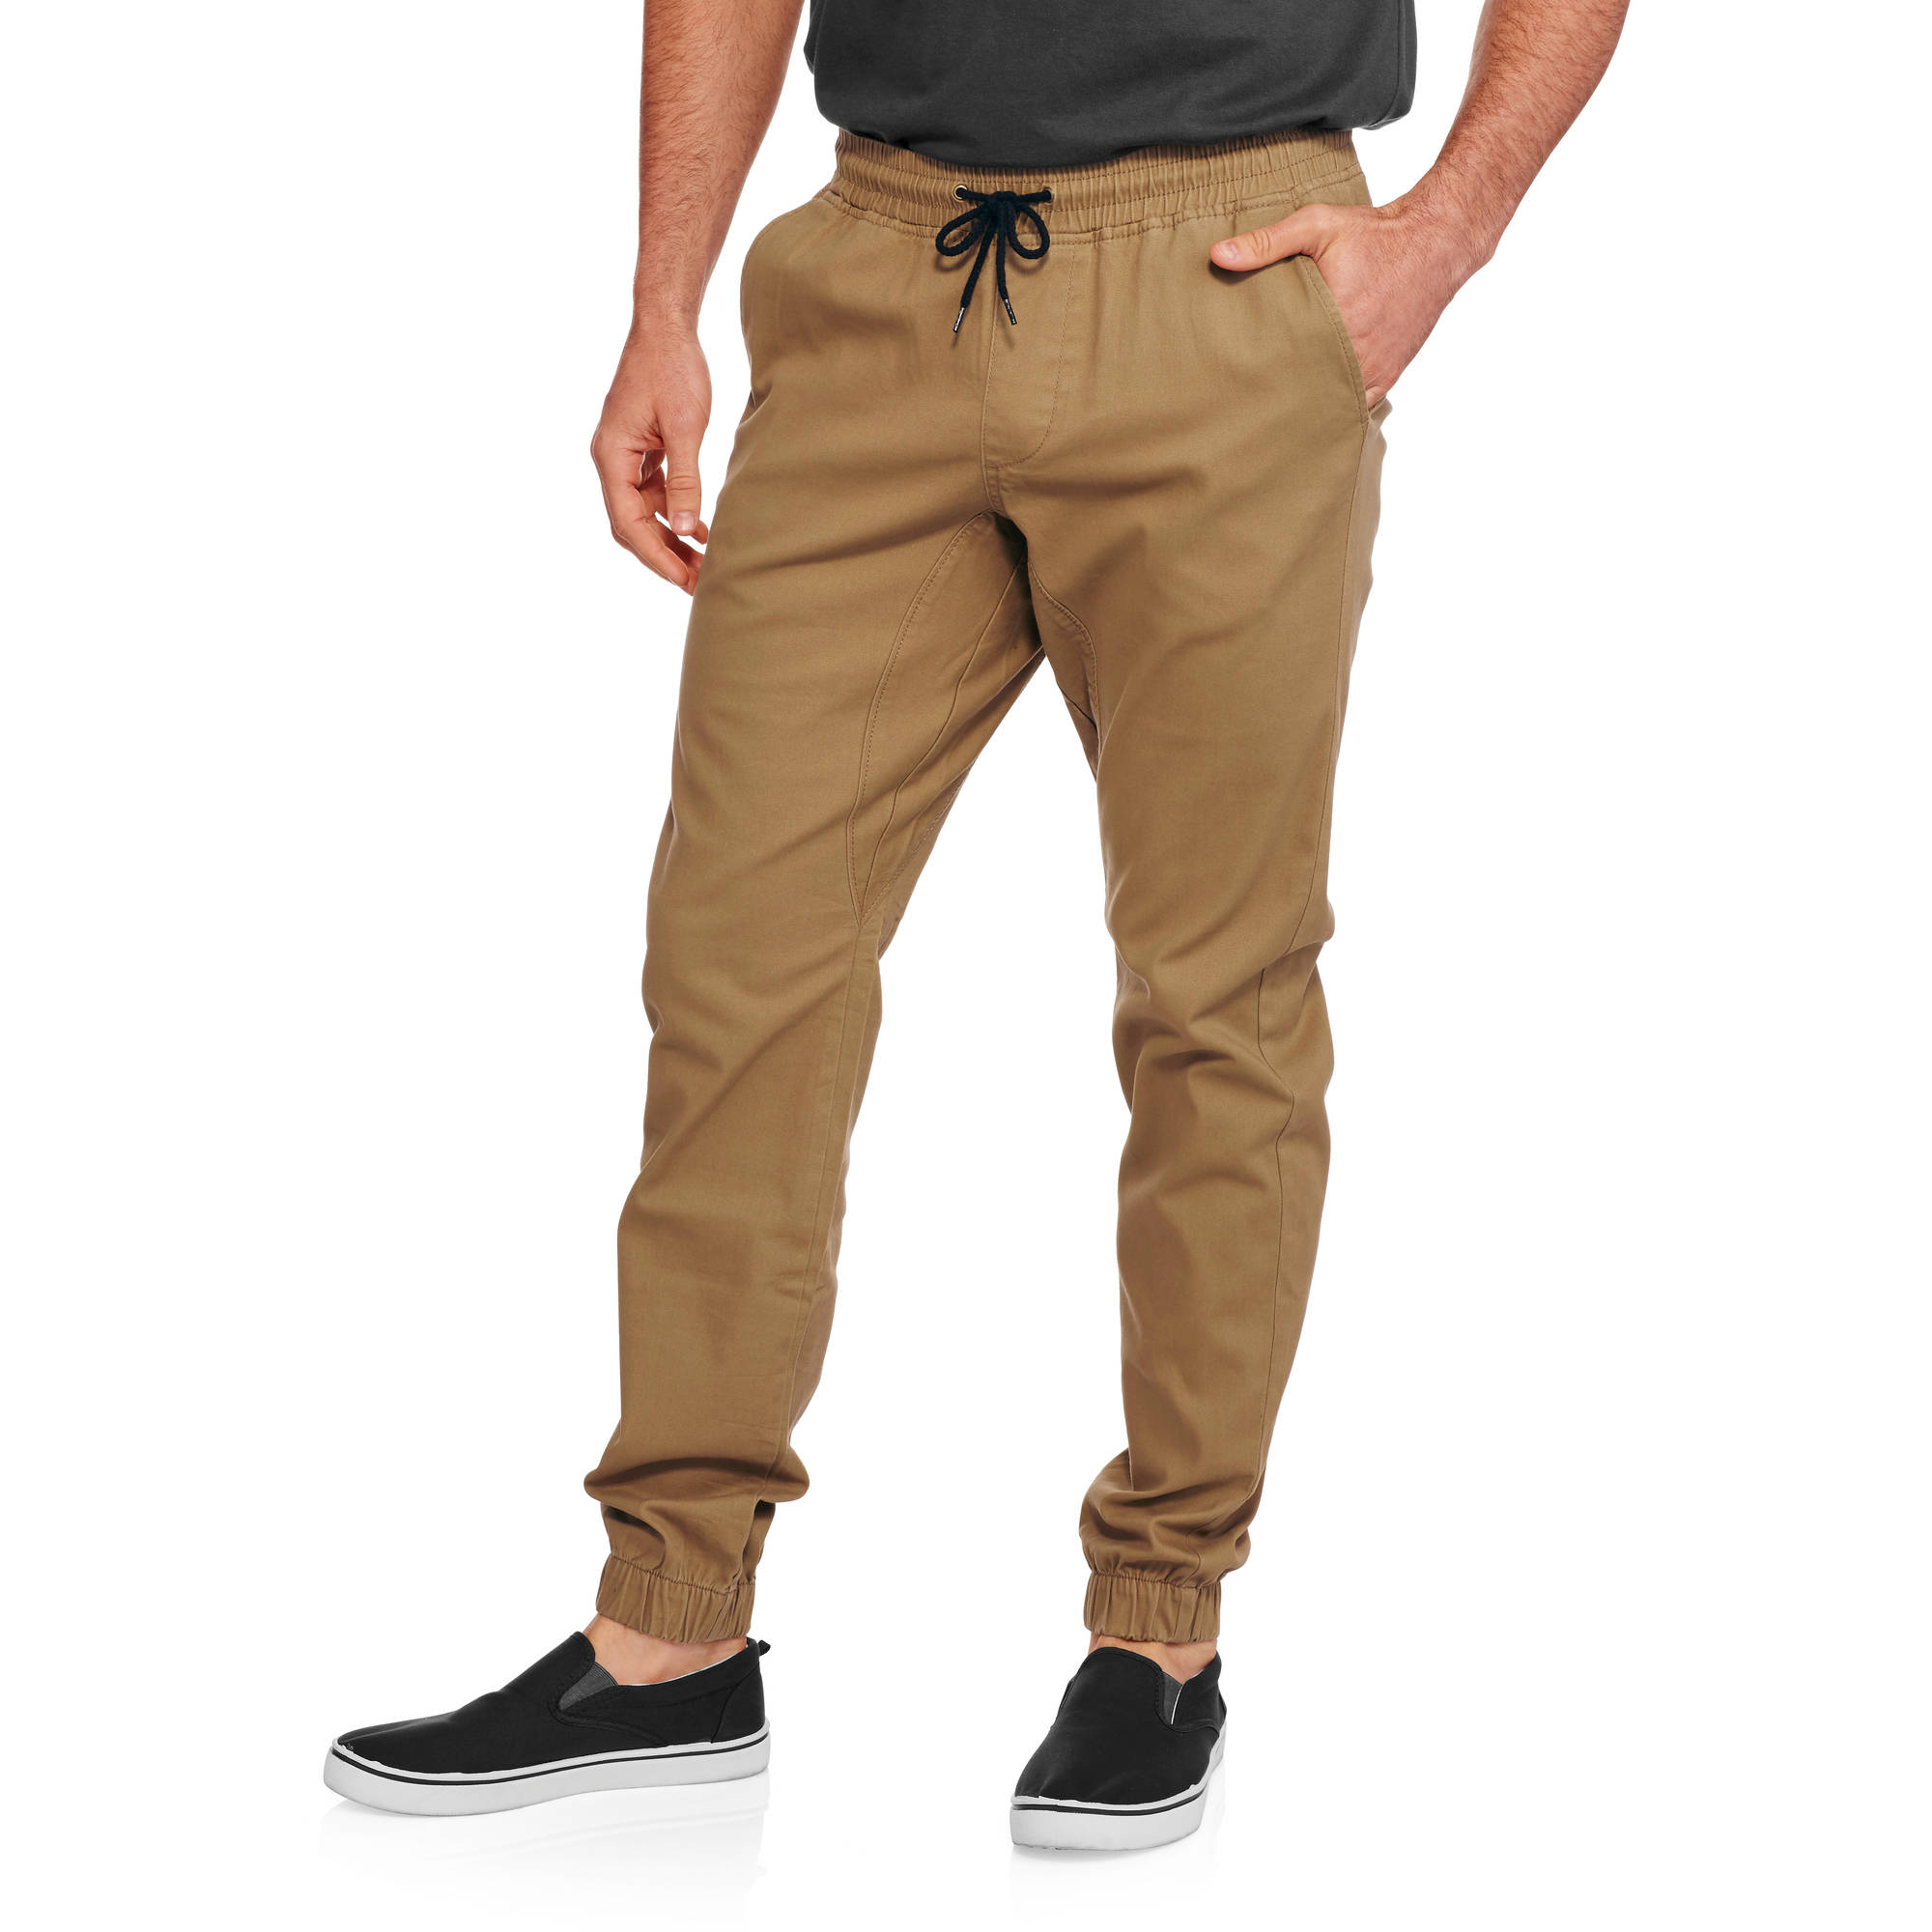 Faded Glory Men's Twill Jogger Pants